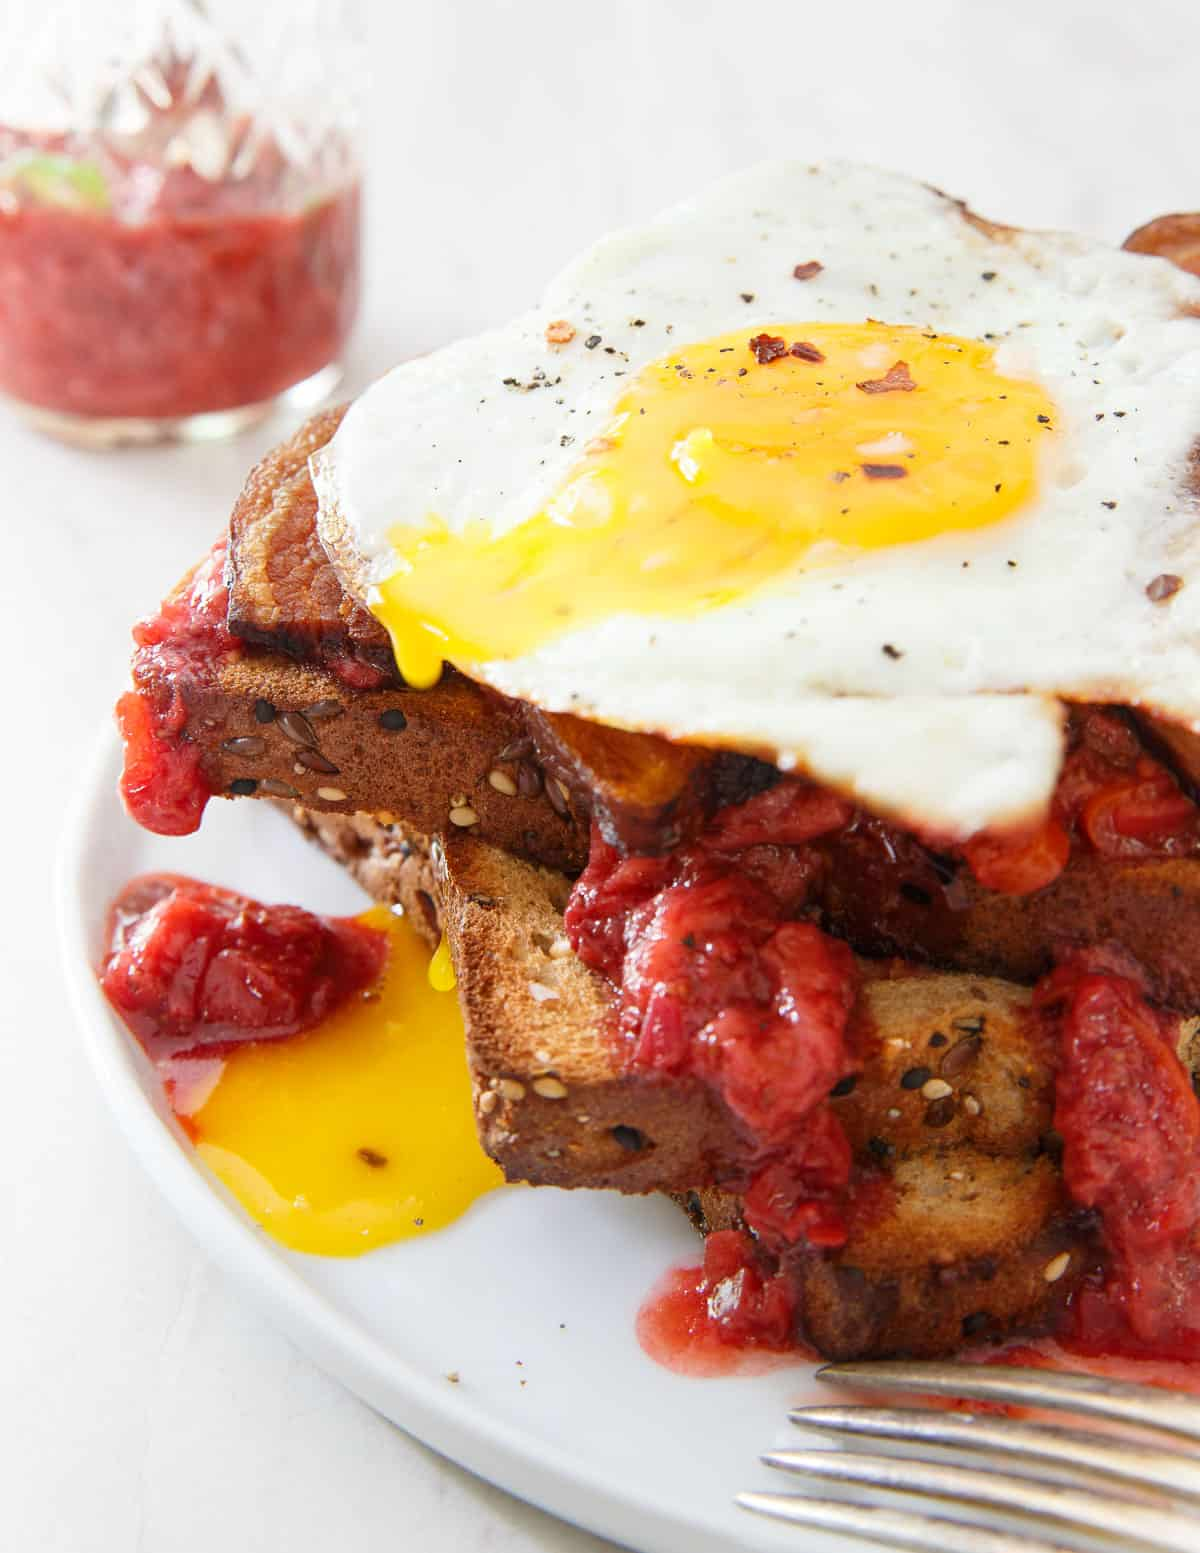 Strawberry Chili Jam makes the ultimate breakfast sandwich with some crispy bacon and a runny egg